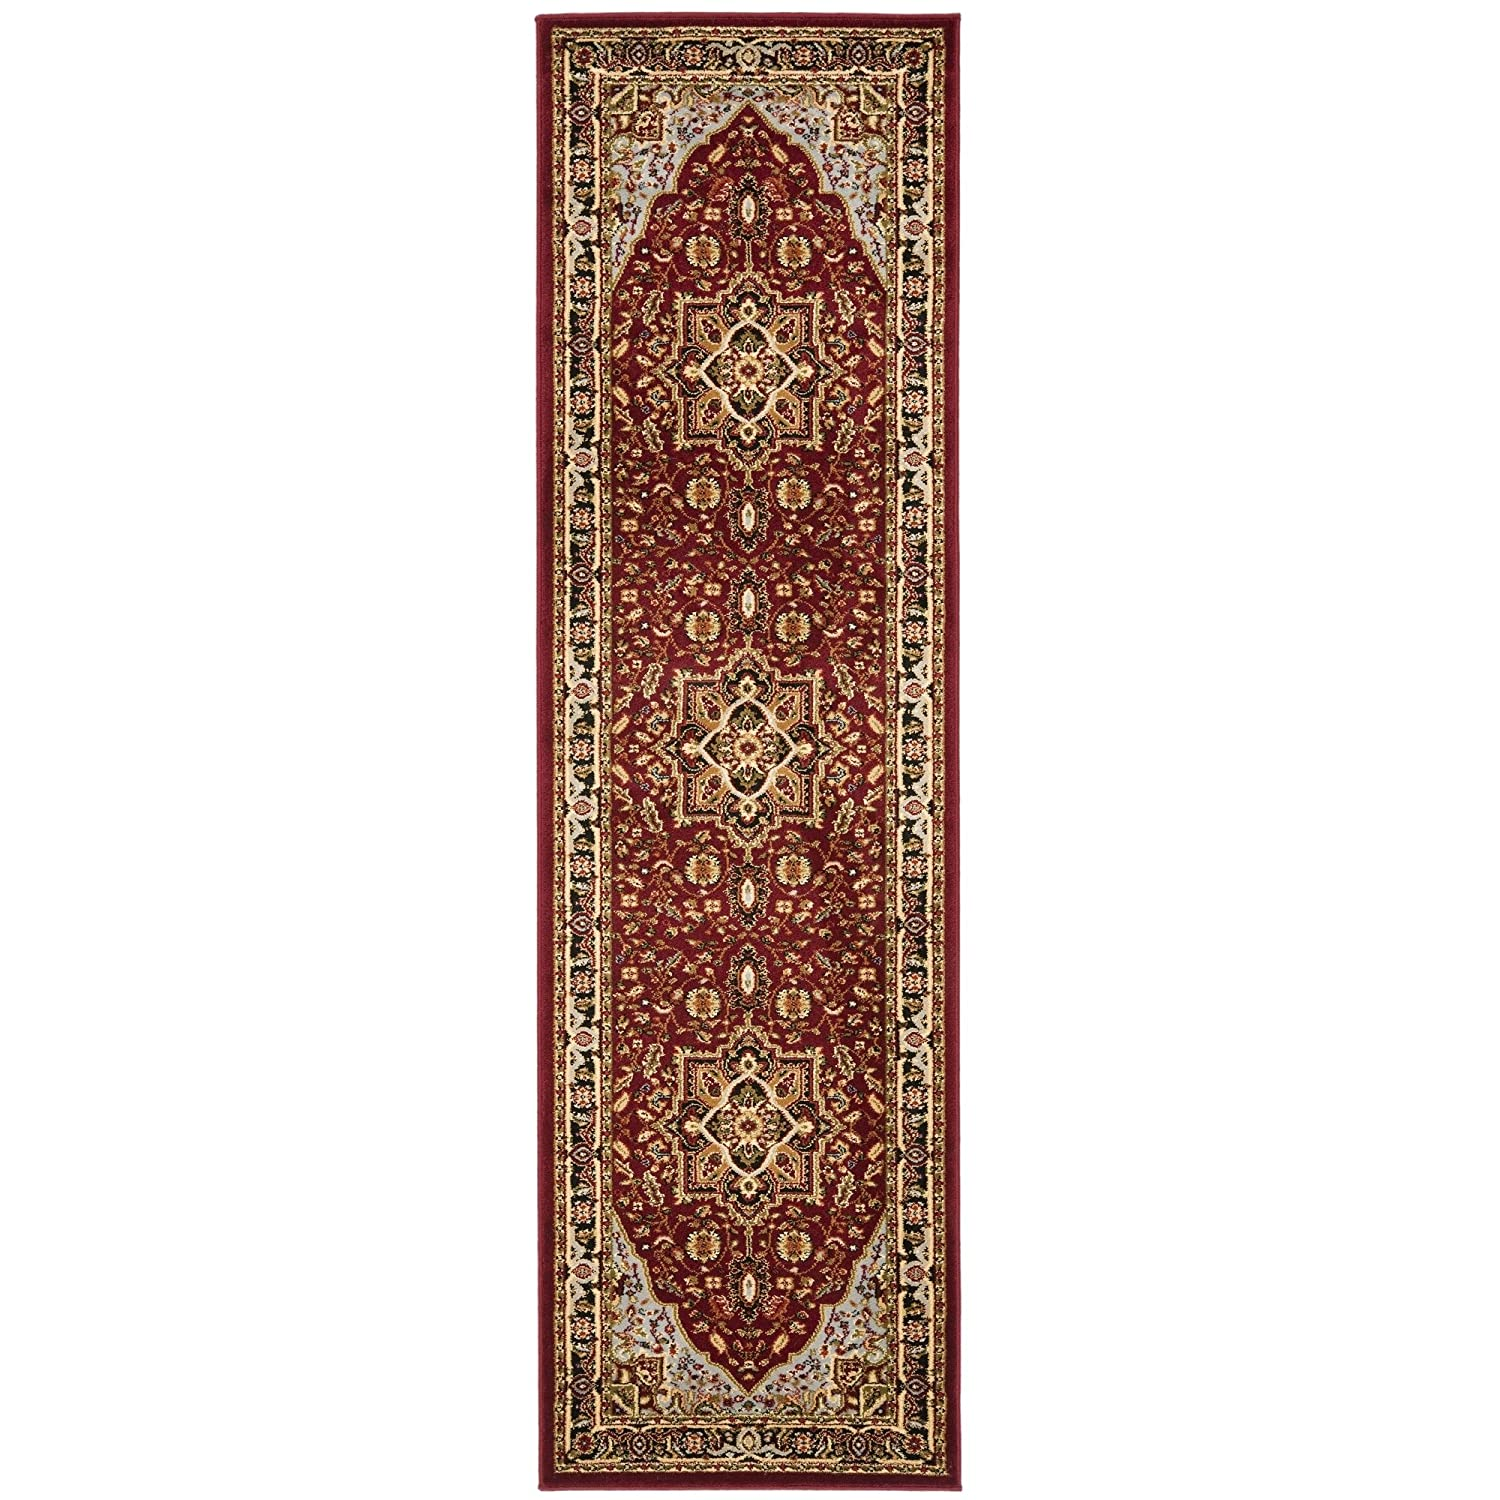 Safavieh Lyndhurst Collection LNH330B Red and Black Runner, 2 feet 3 inches by 6 feet (2'3 x 6') LNH330B-26